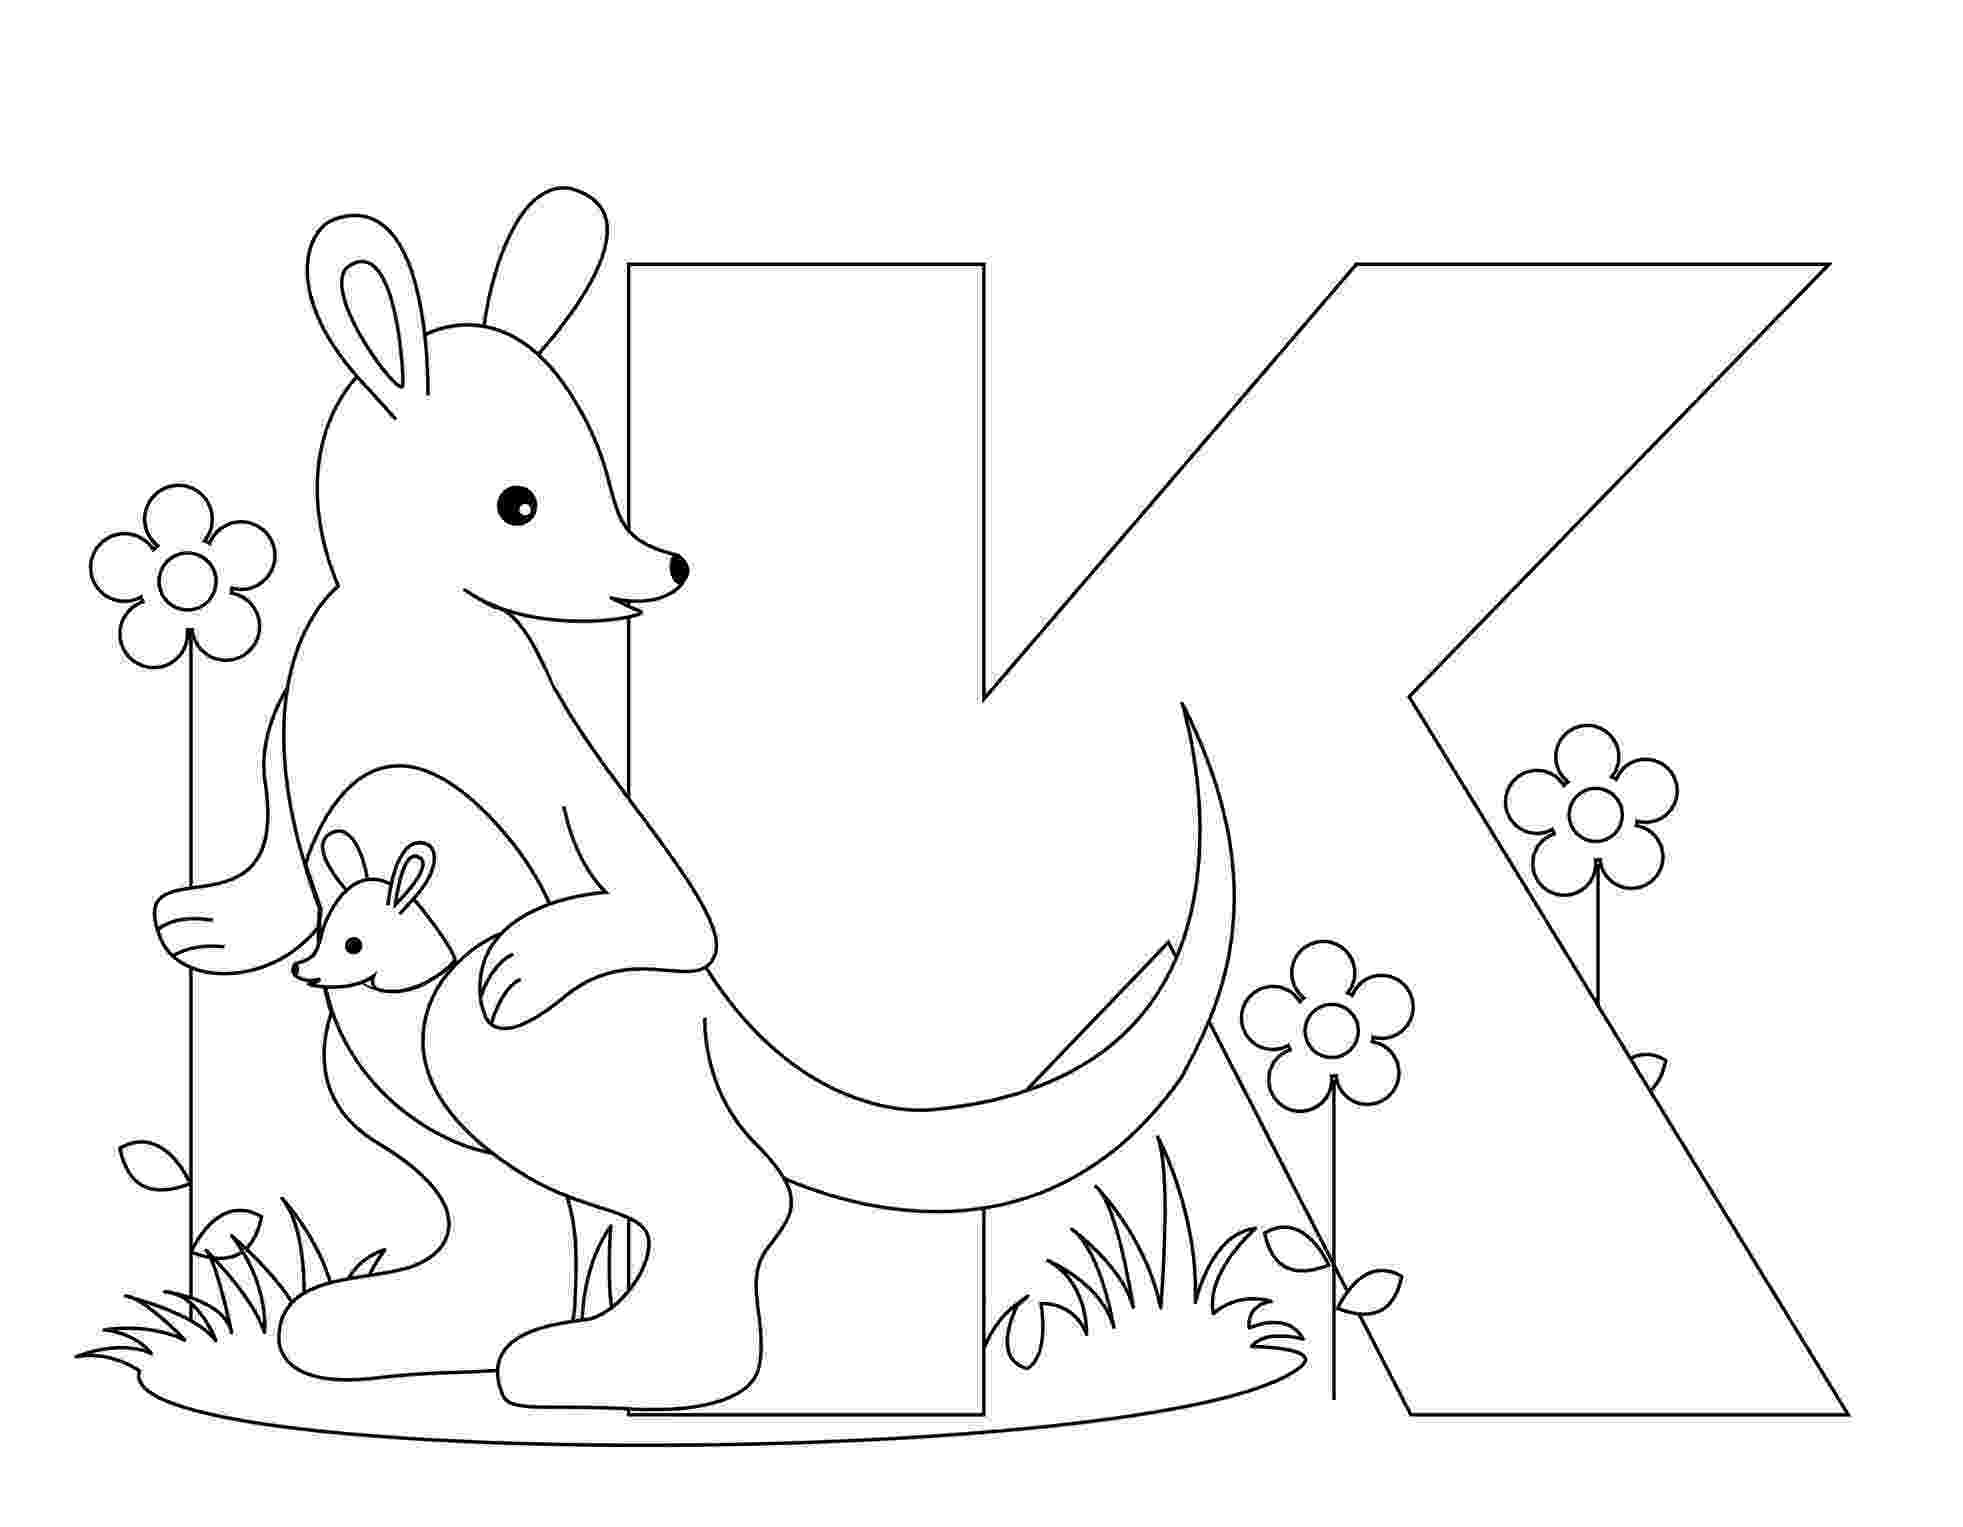 letter k coloring pages letter k drawing at getdrawings free download coloring k pages letter